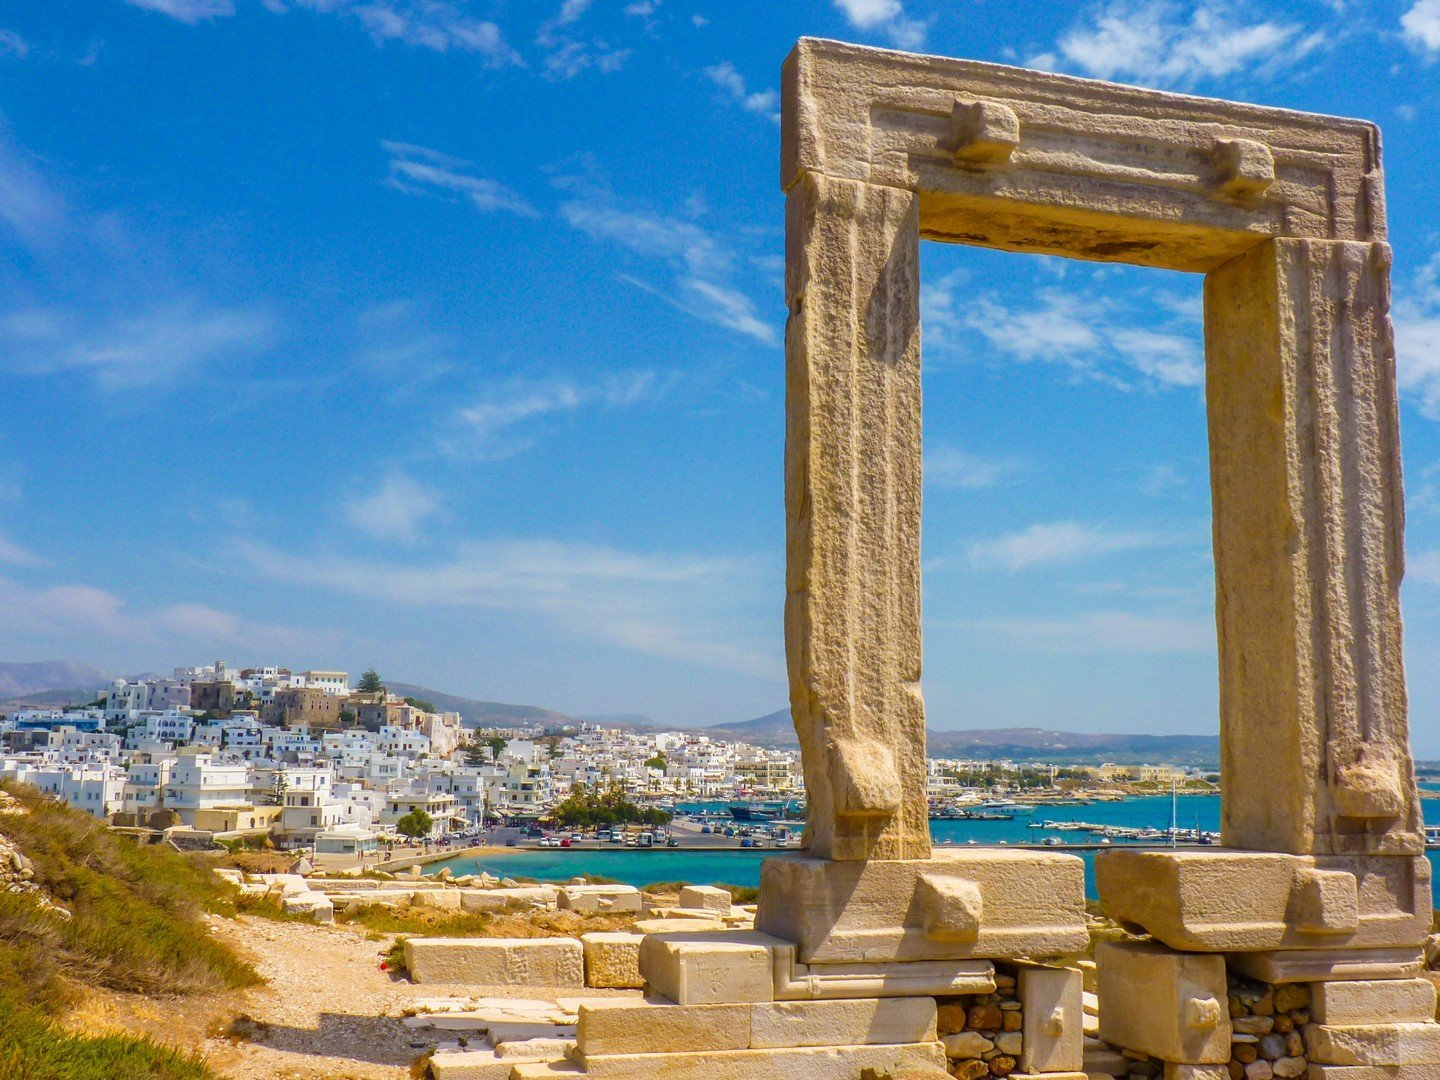 Portara - ruins of ancient temple of Delian Apollo on Naxos island, Cyclades, Greece shutterstock_413482879